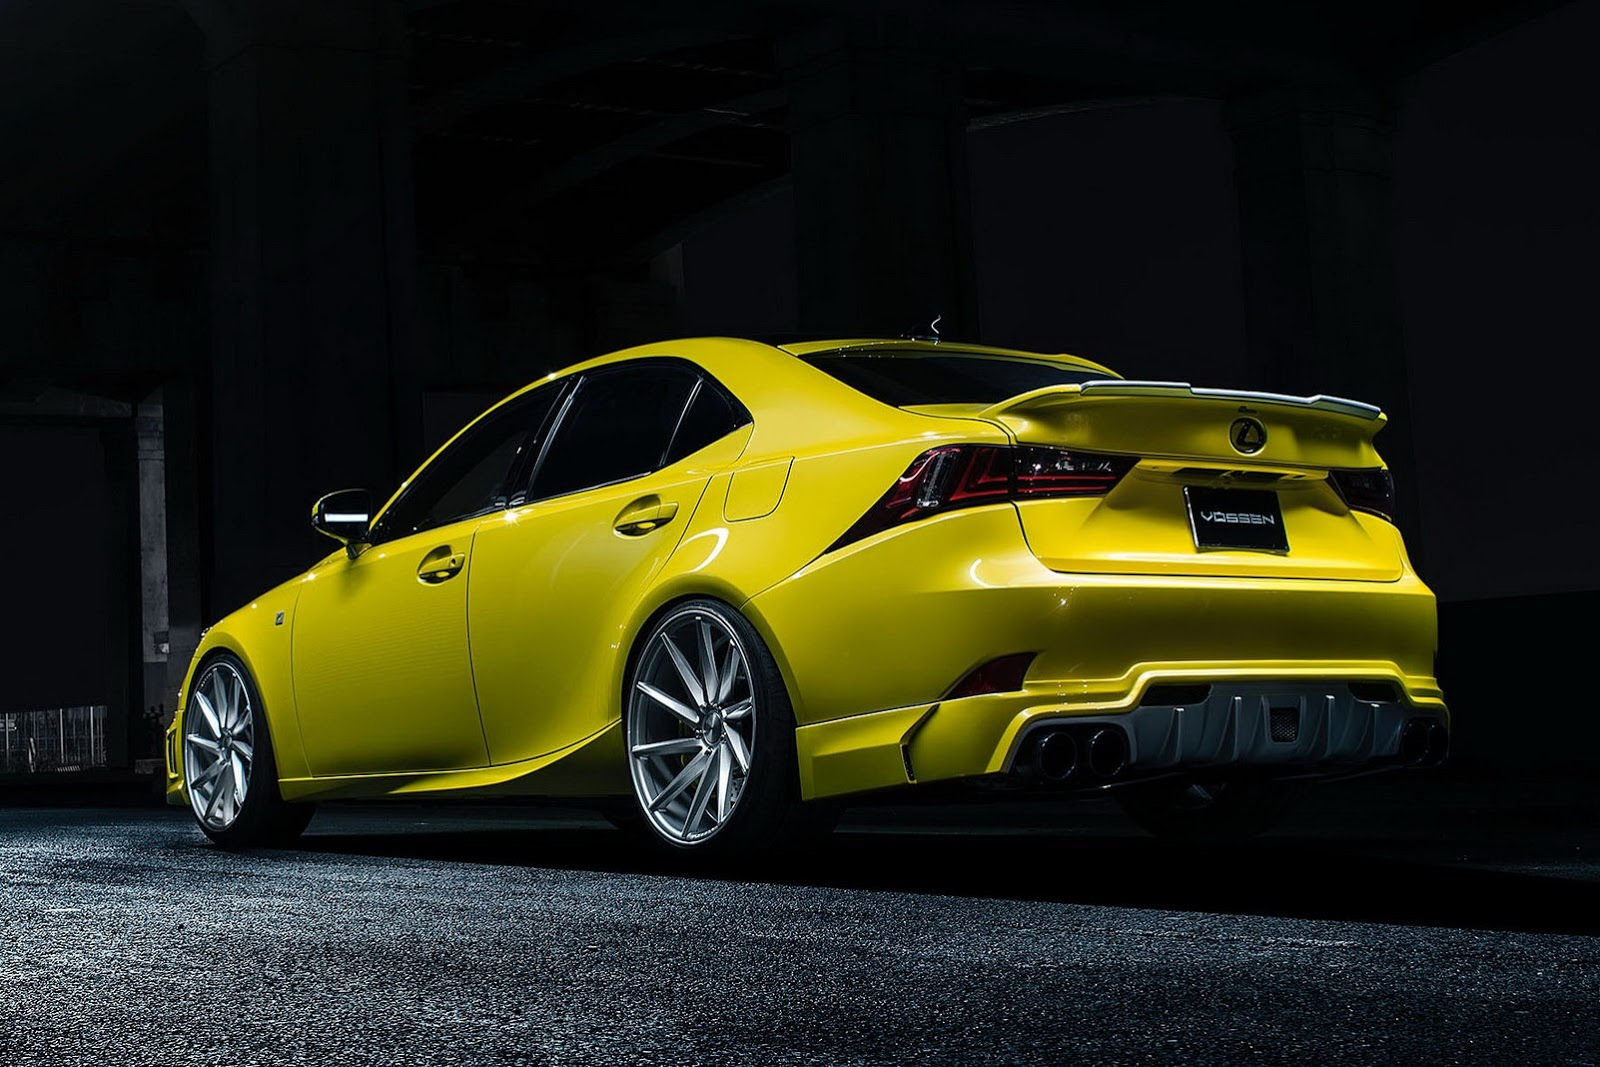 Lexus Cars News Customised Sedans For 2013 Sema Show